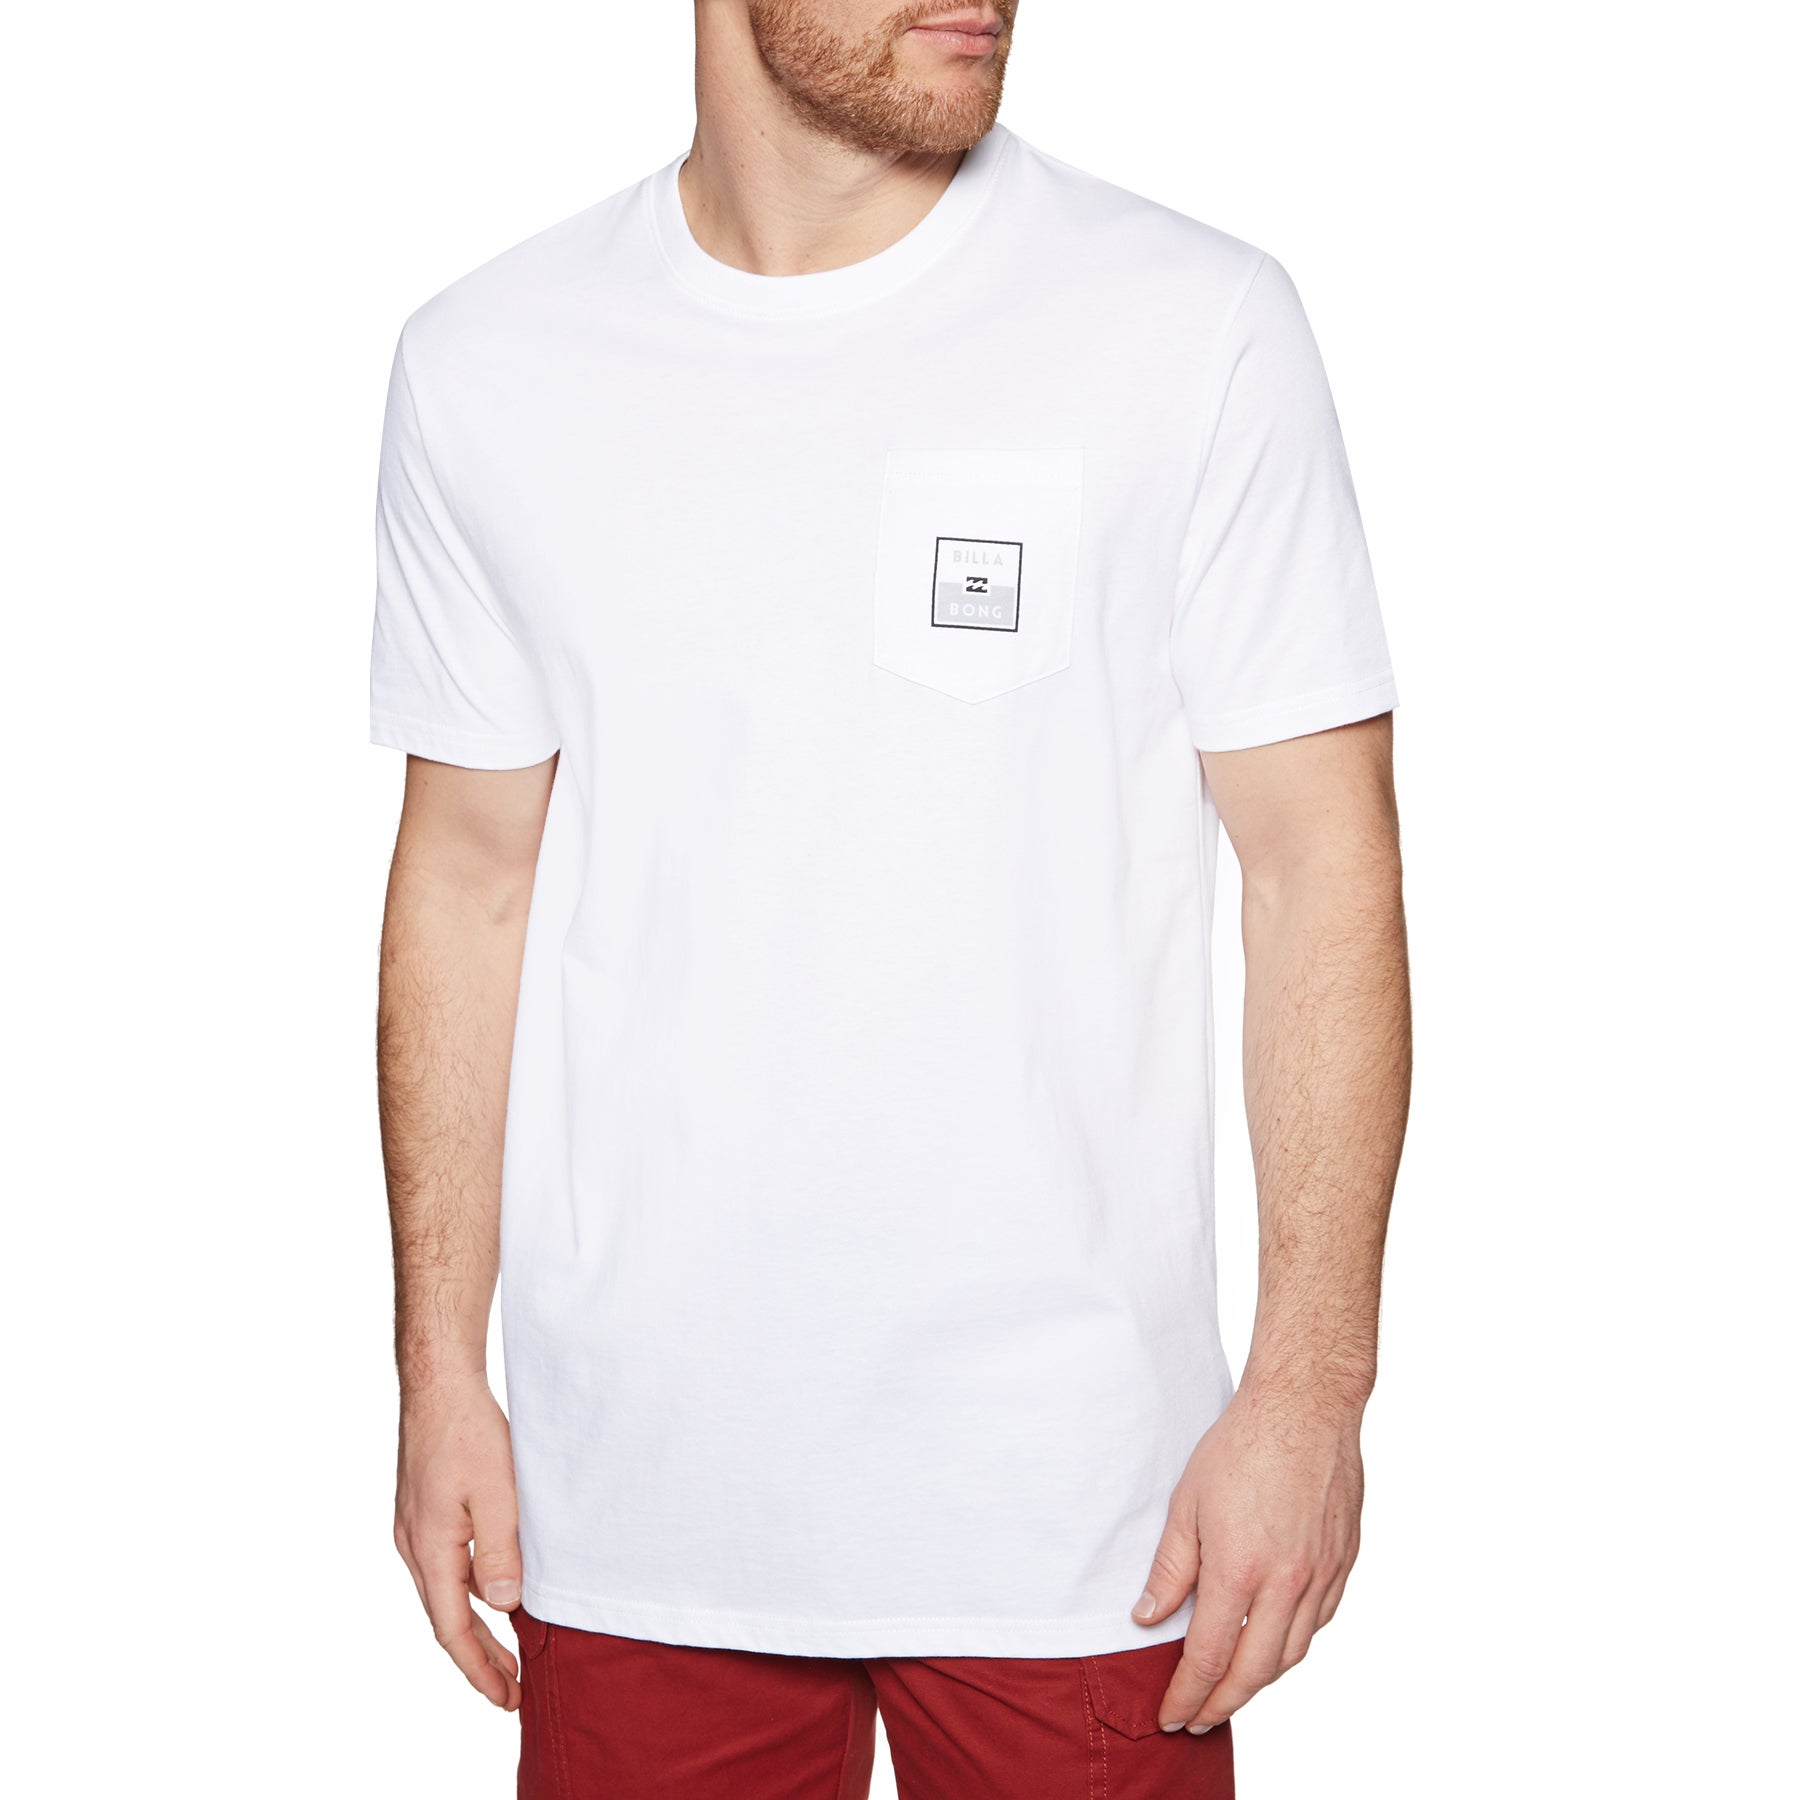 Billabong Stacked Short Sleeve T-Shirt - White